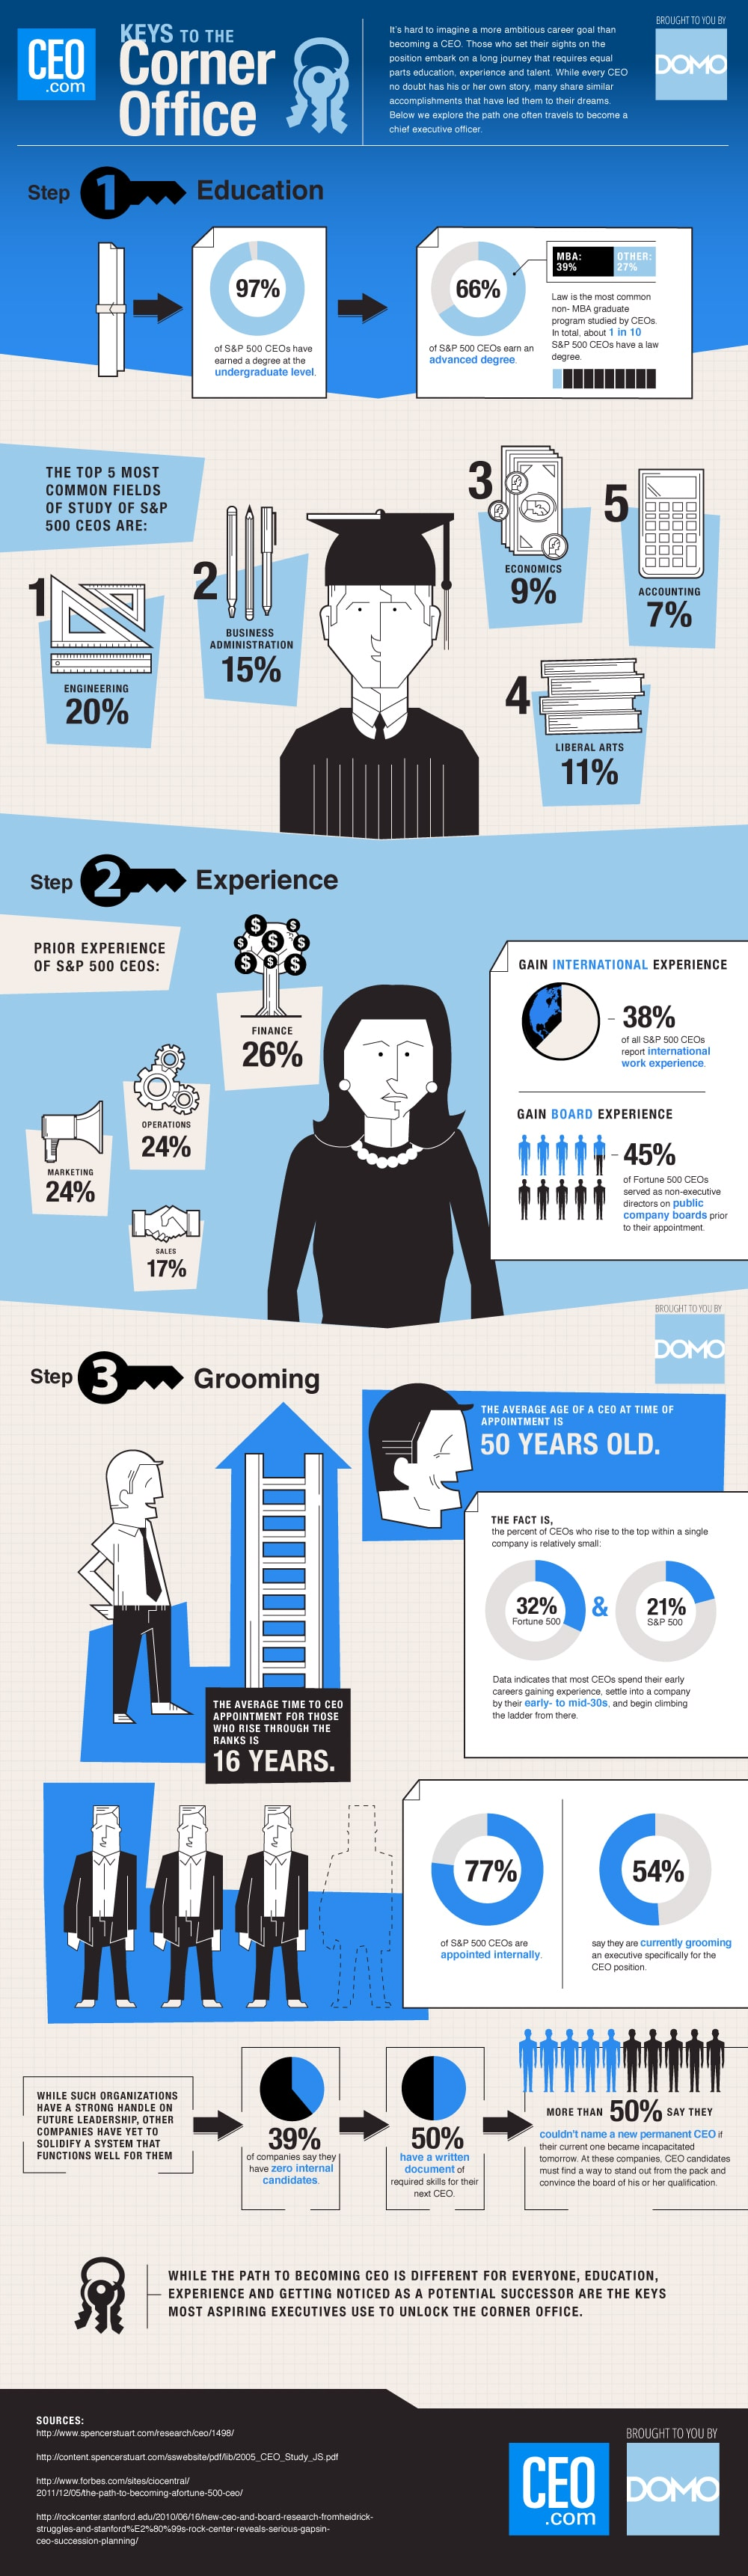 becoming-a-ceo-infographic